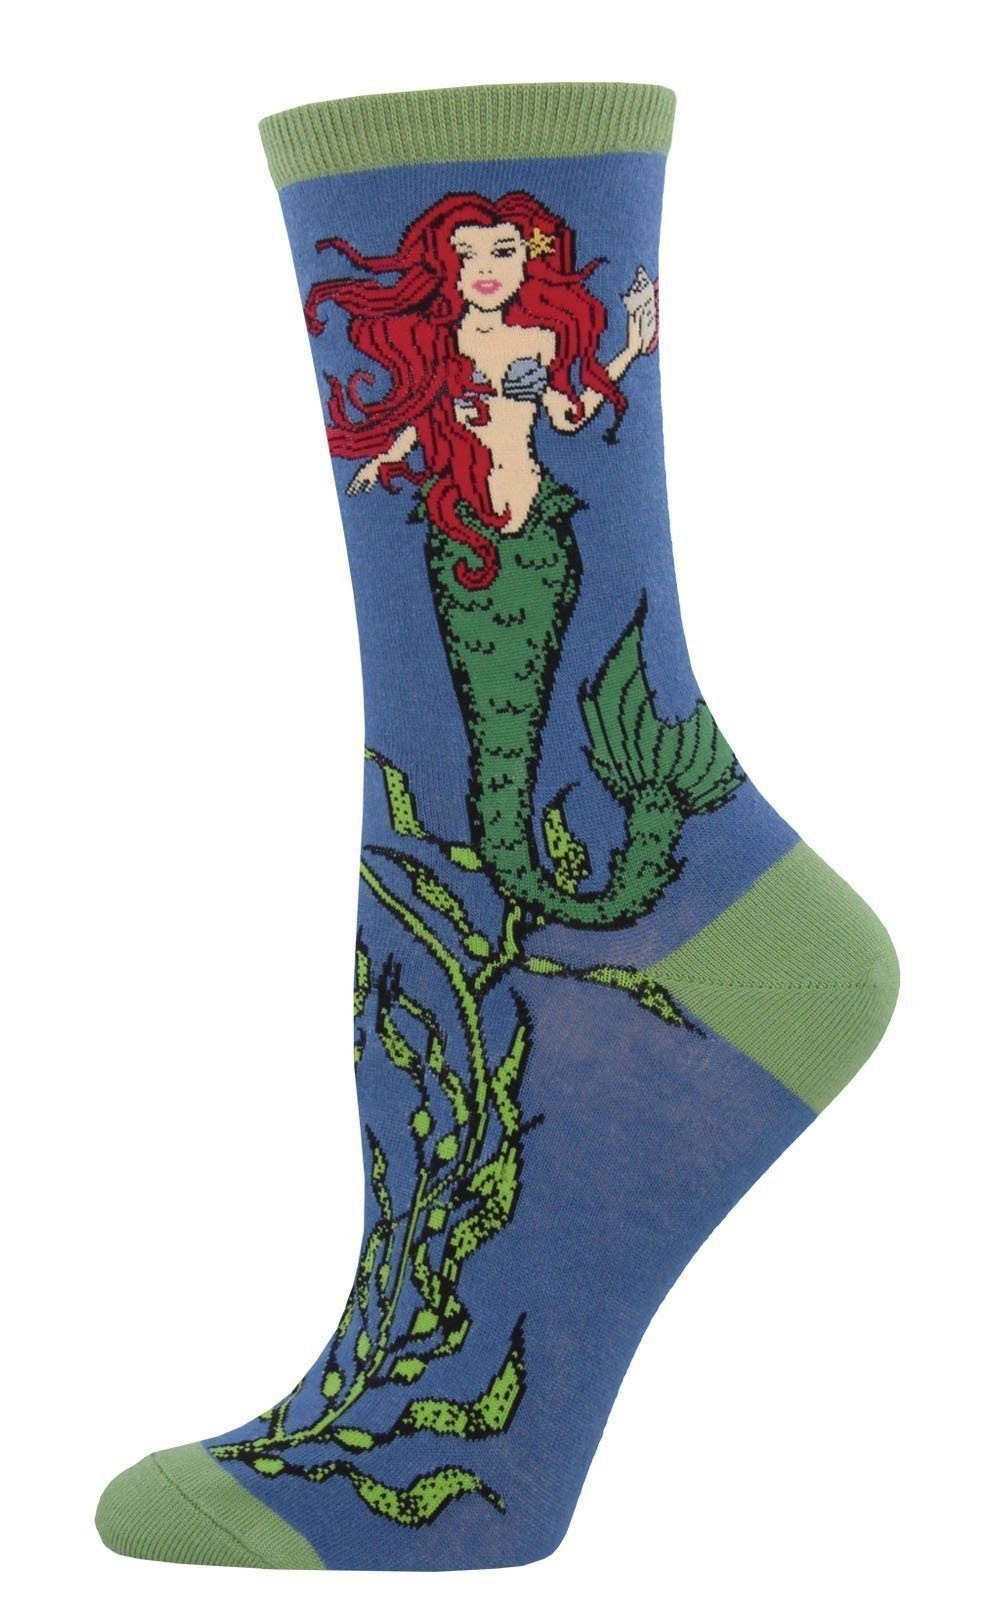 Socksmith - Mermaid Crew Socks | Women's - Knock Your Socks Off